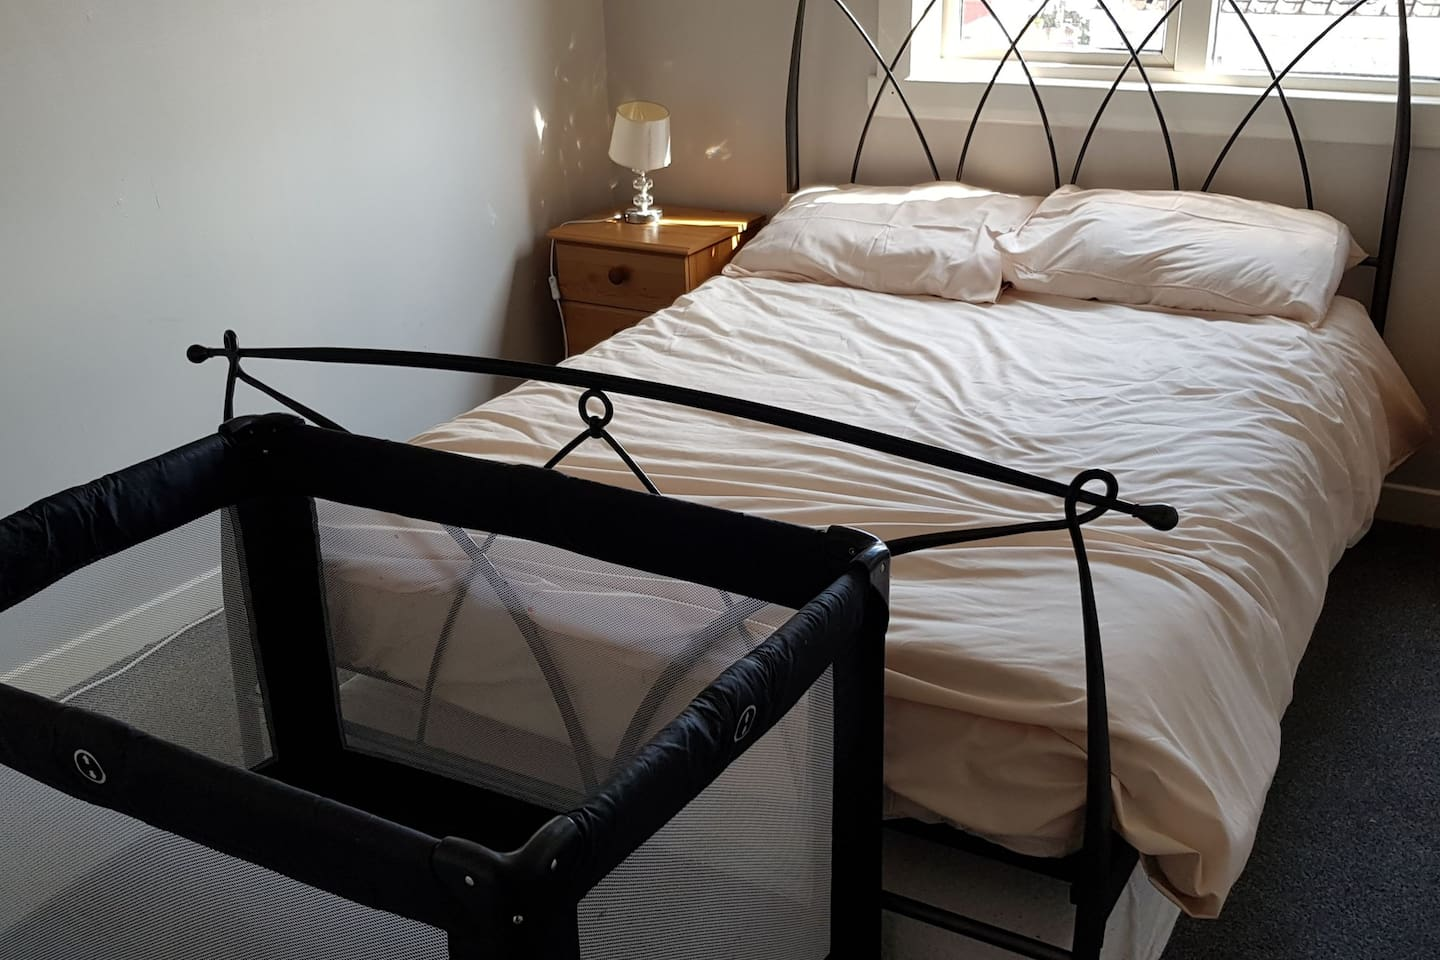 Room for a travel cot in the bedroom